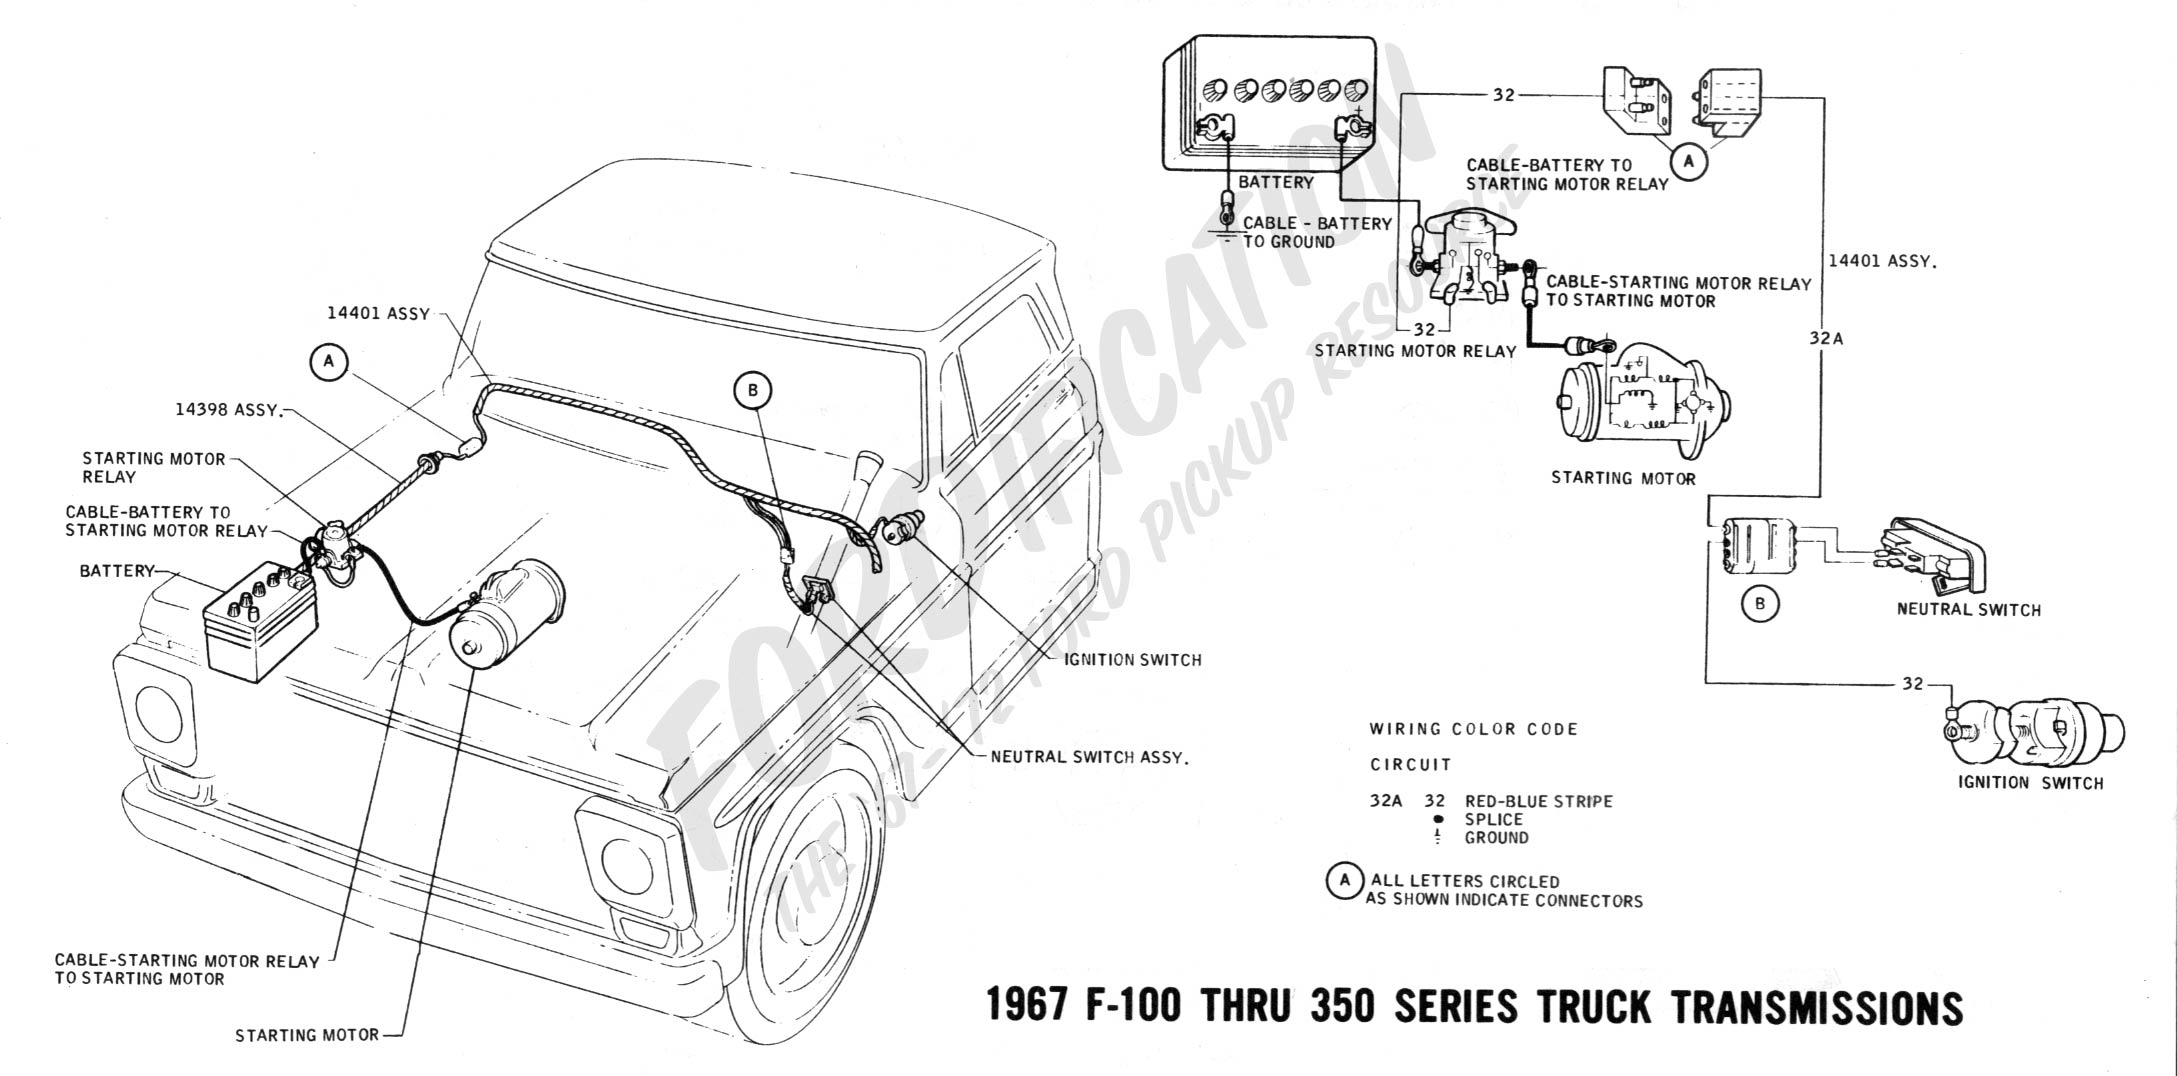 wiring diagram for ford truck wiring diagram for ford f700 truck wiring diagram alternator f700 auto wiring diagram wiring diagram for 1970 ford